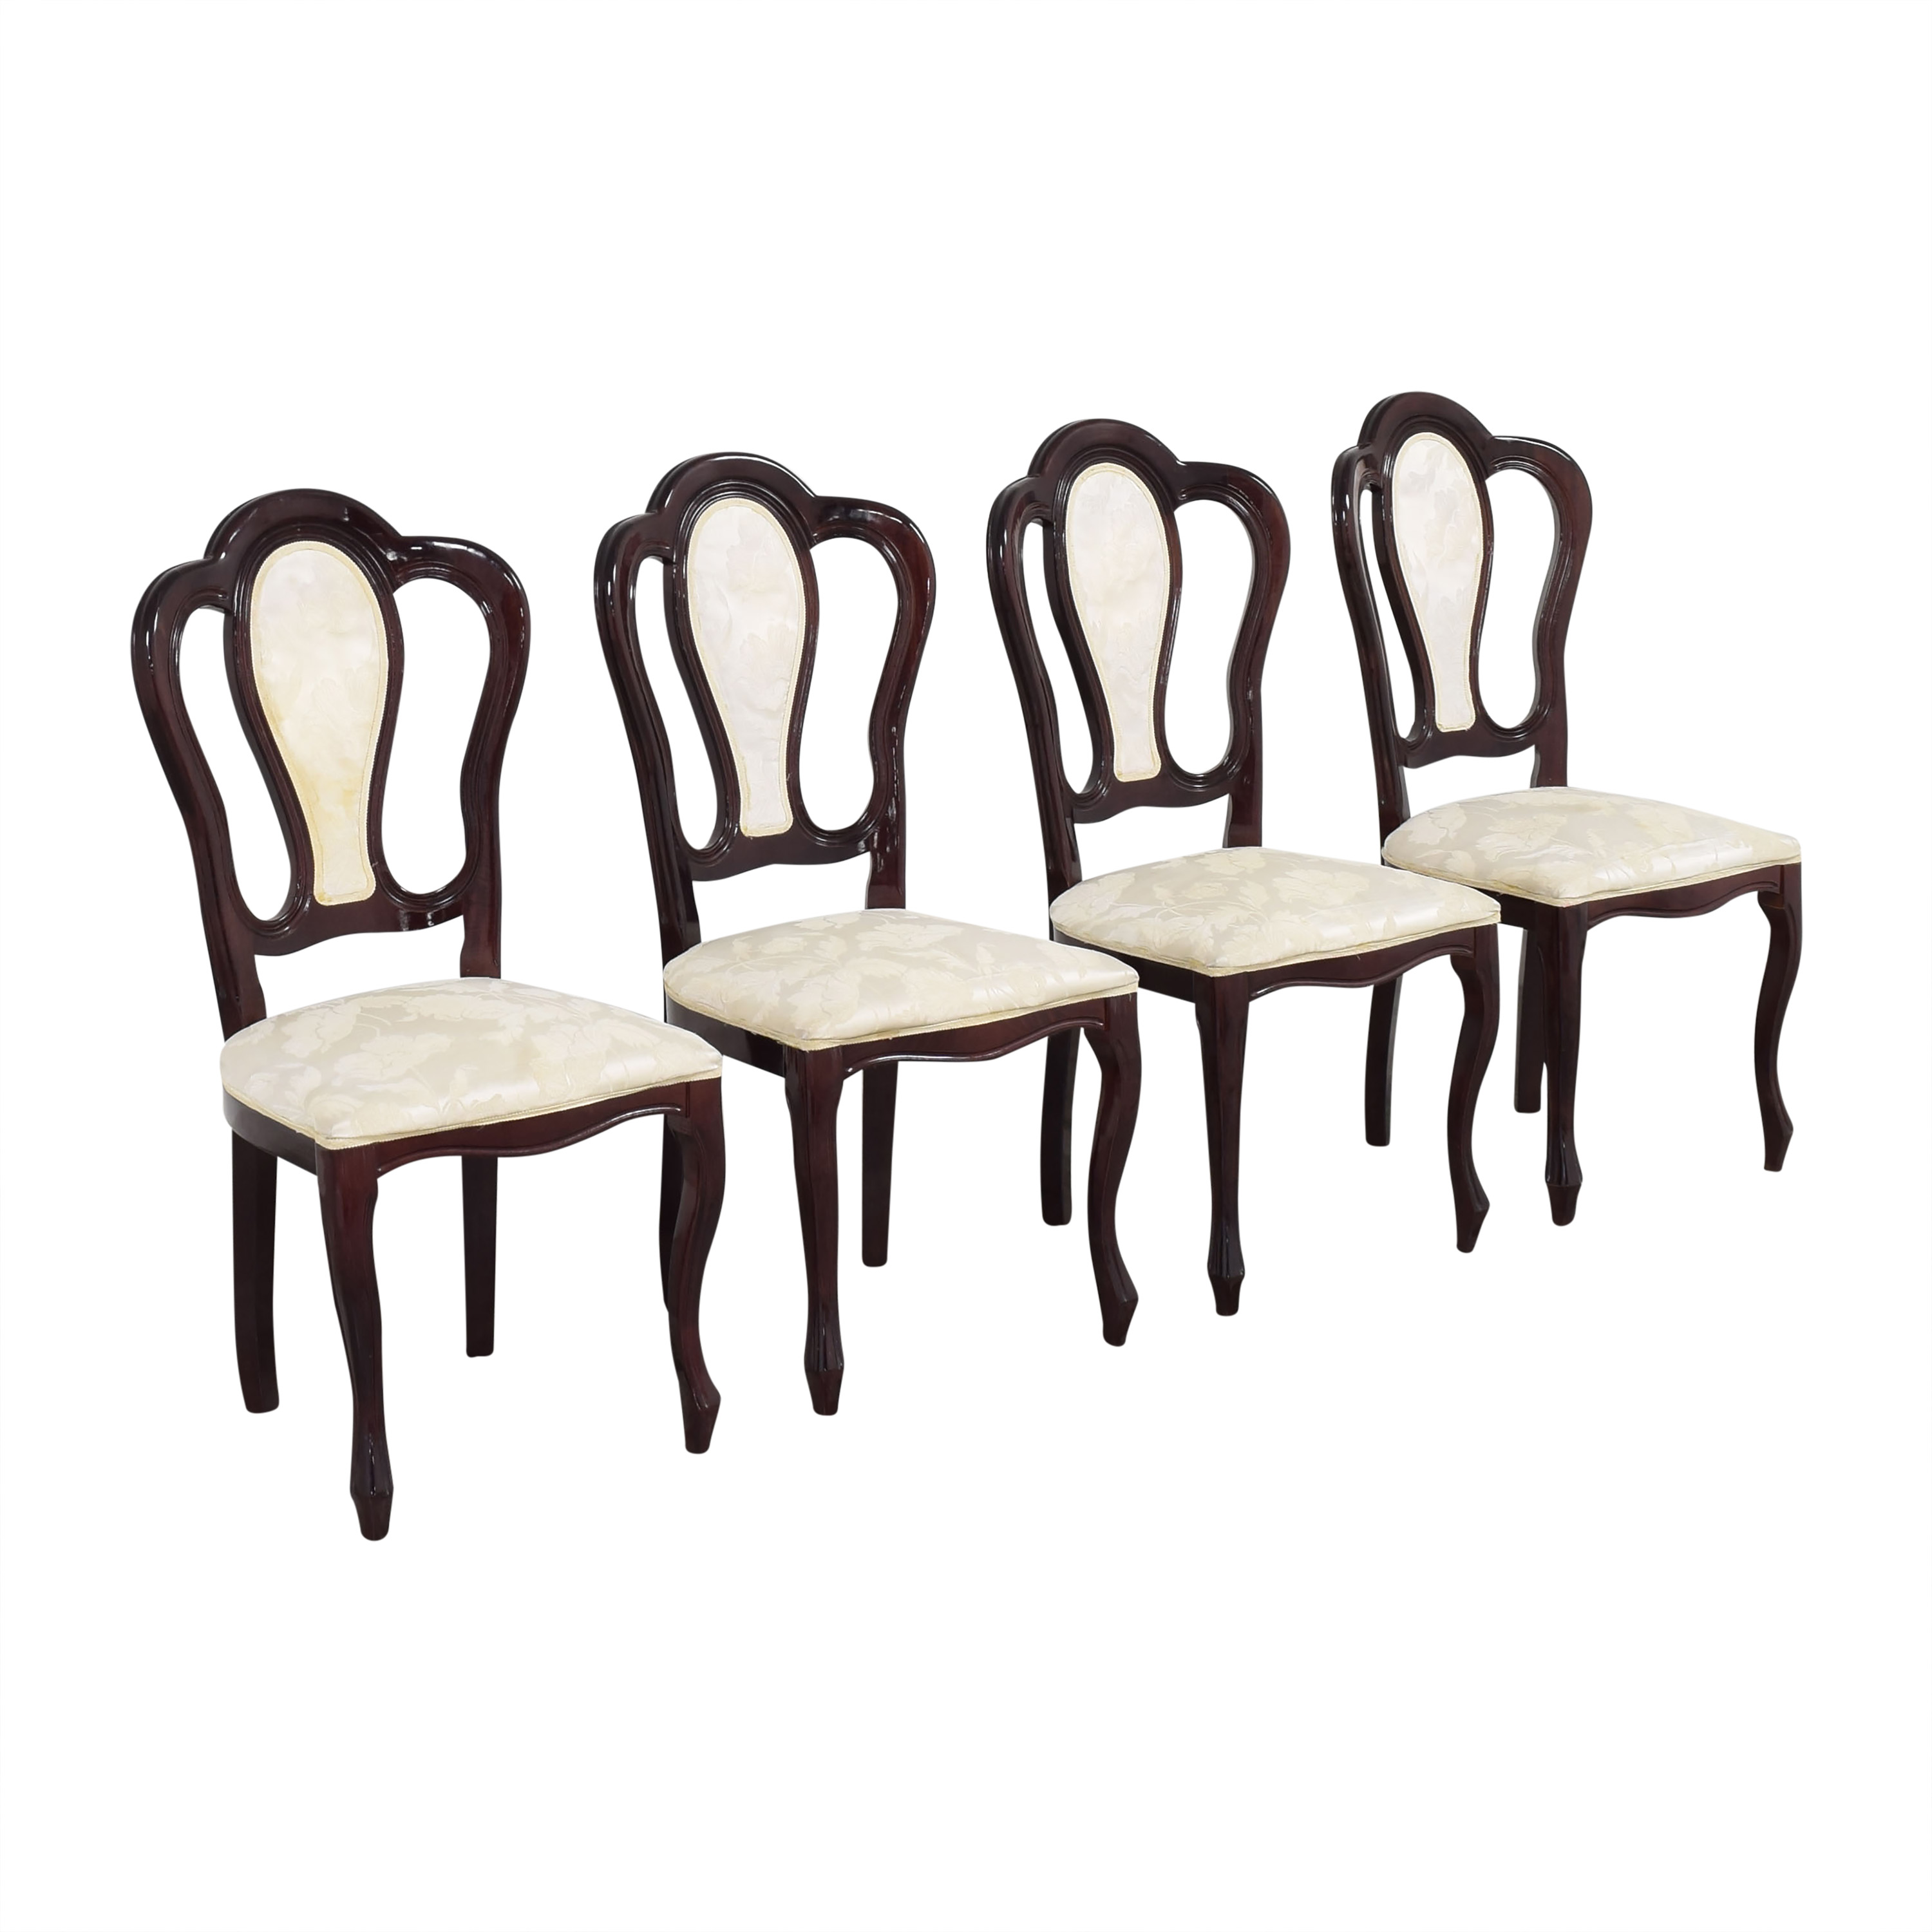 Floral Upholstered Dining Chairs ma